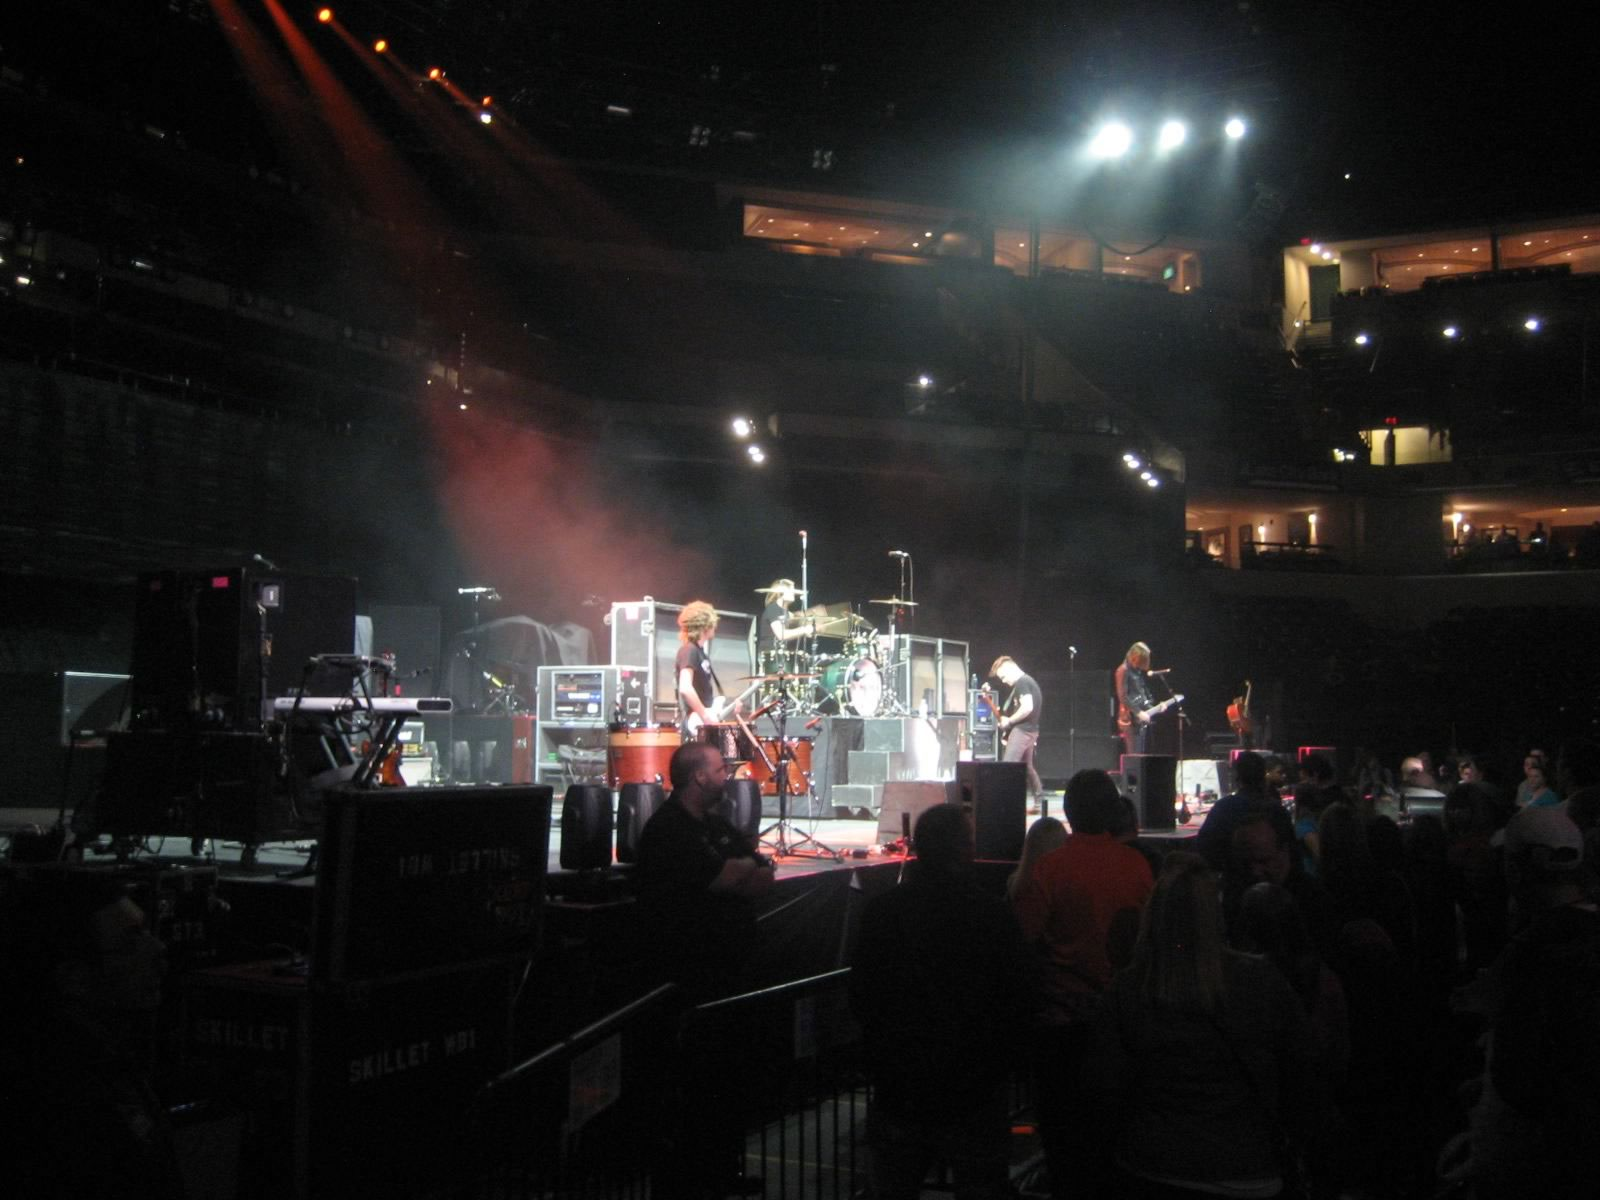 Best Seats For a Concert!: Bankers Life Fieldhouse Section 18 Review